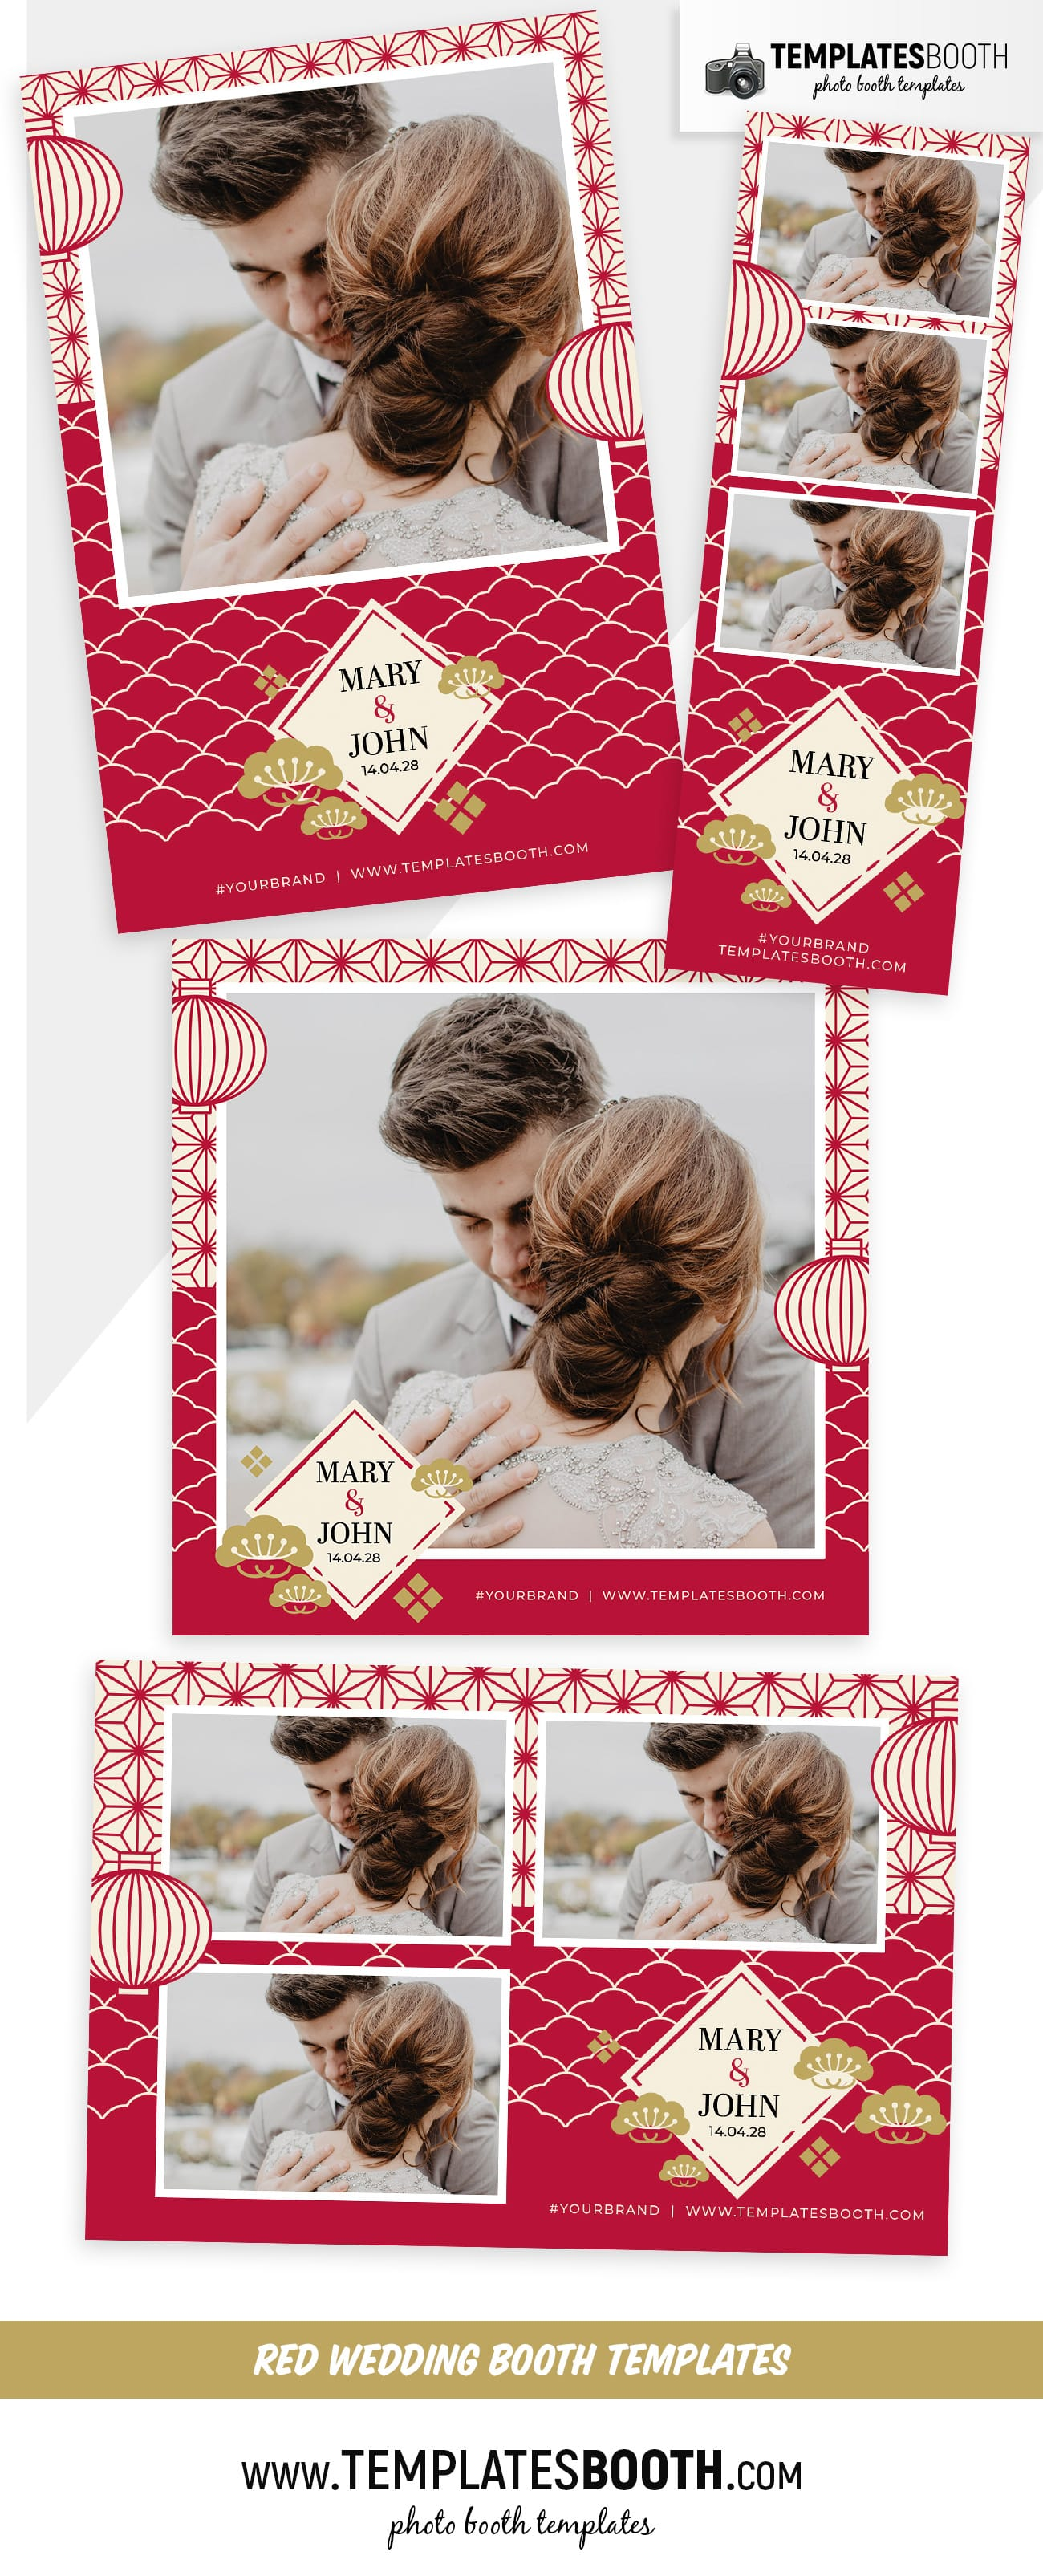 Chinese Wedding Photo Booth Template (full preview)